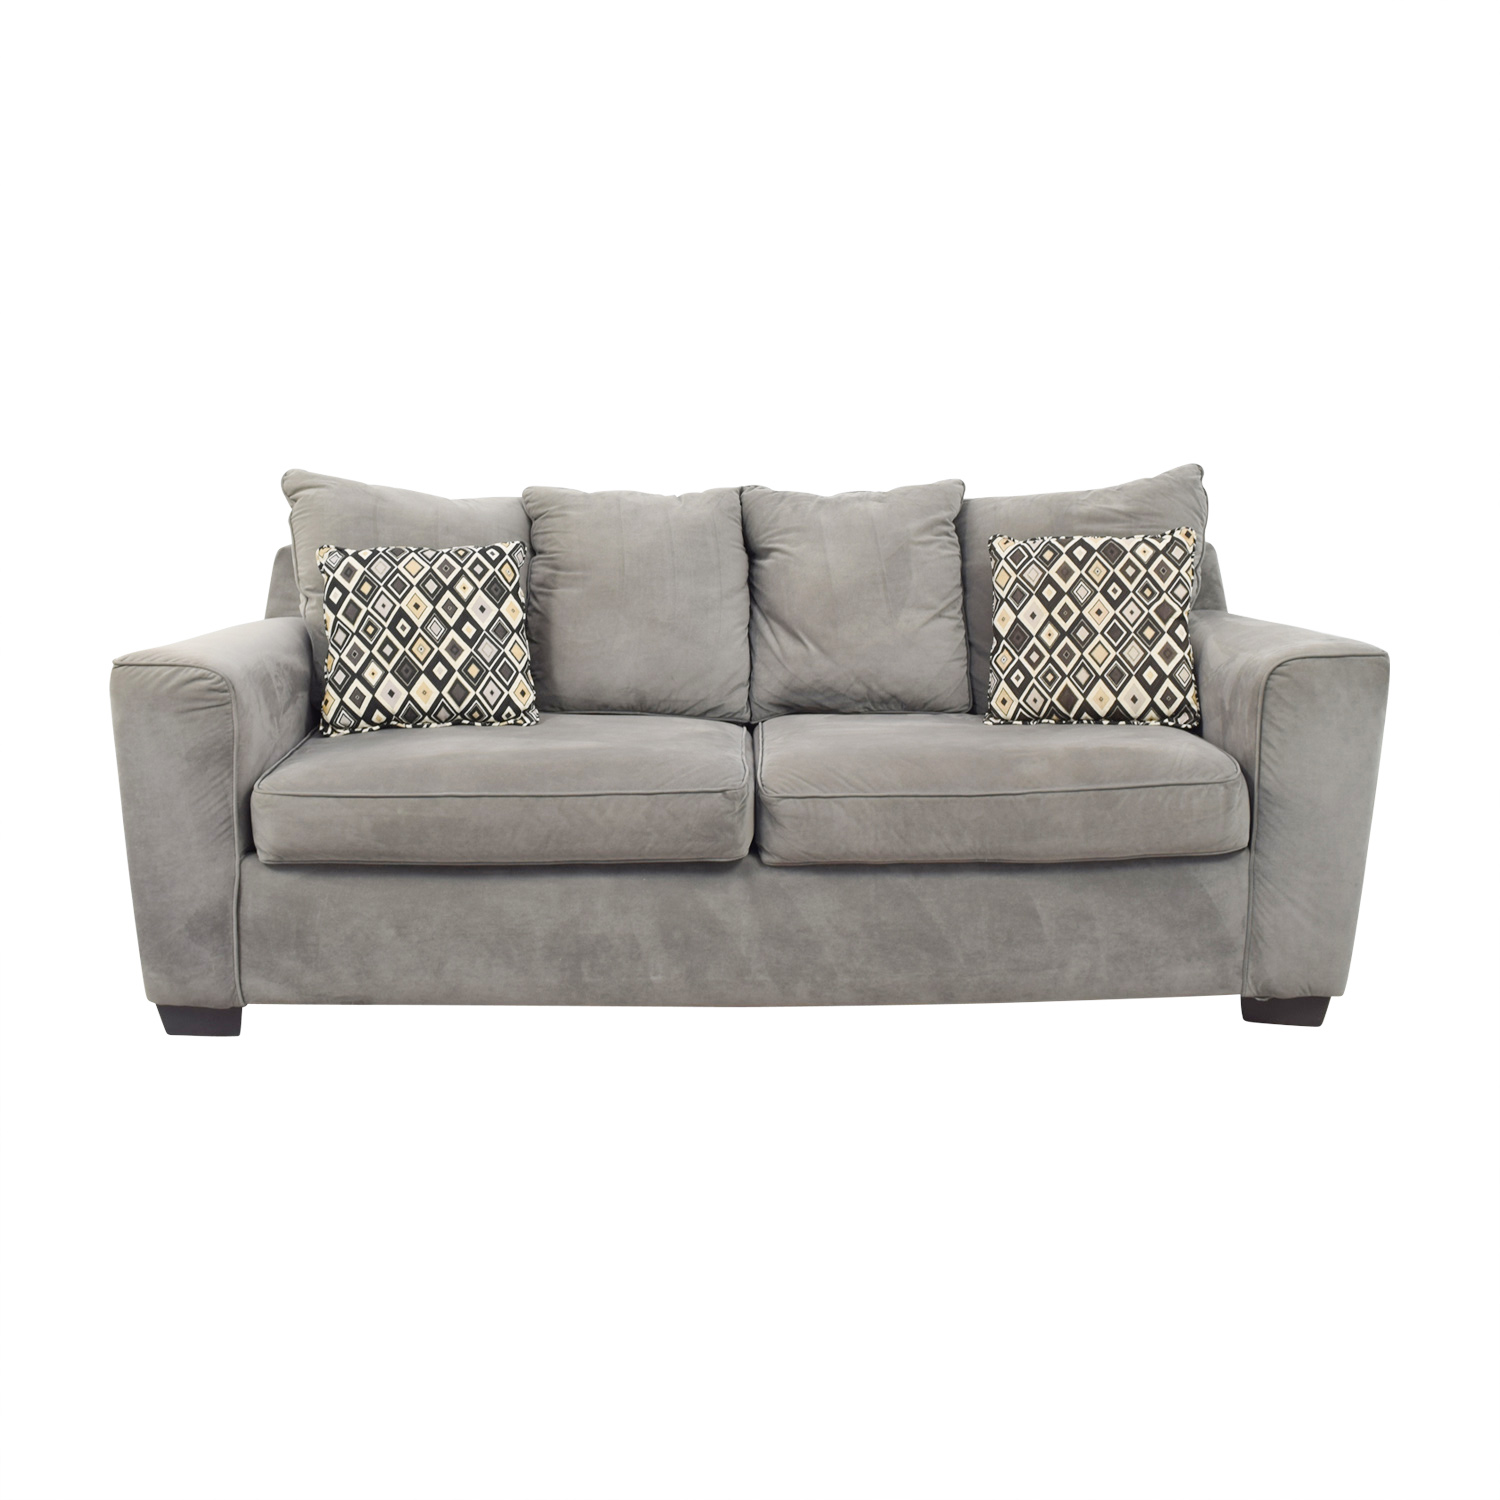 Jennifer Leather Jennifer Leather Two Cushion Sofa nj